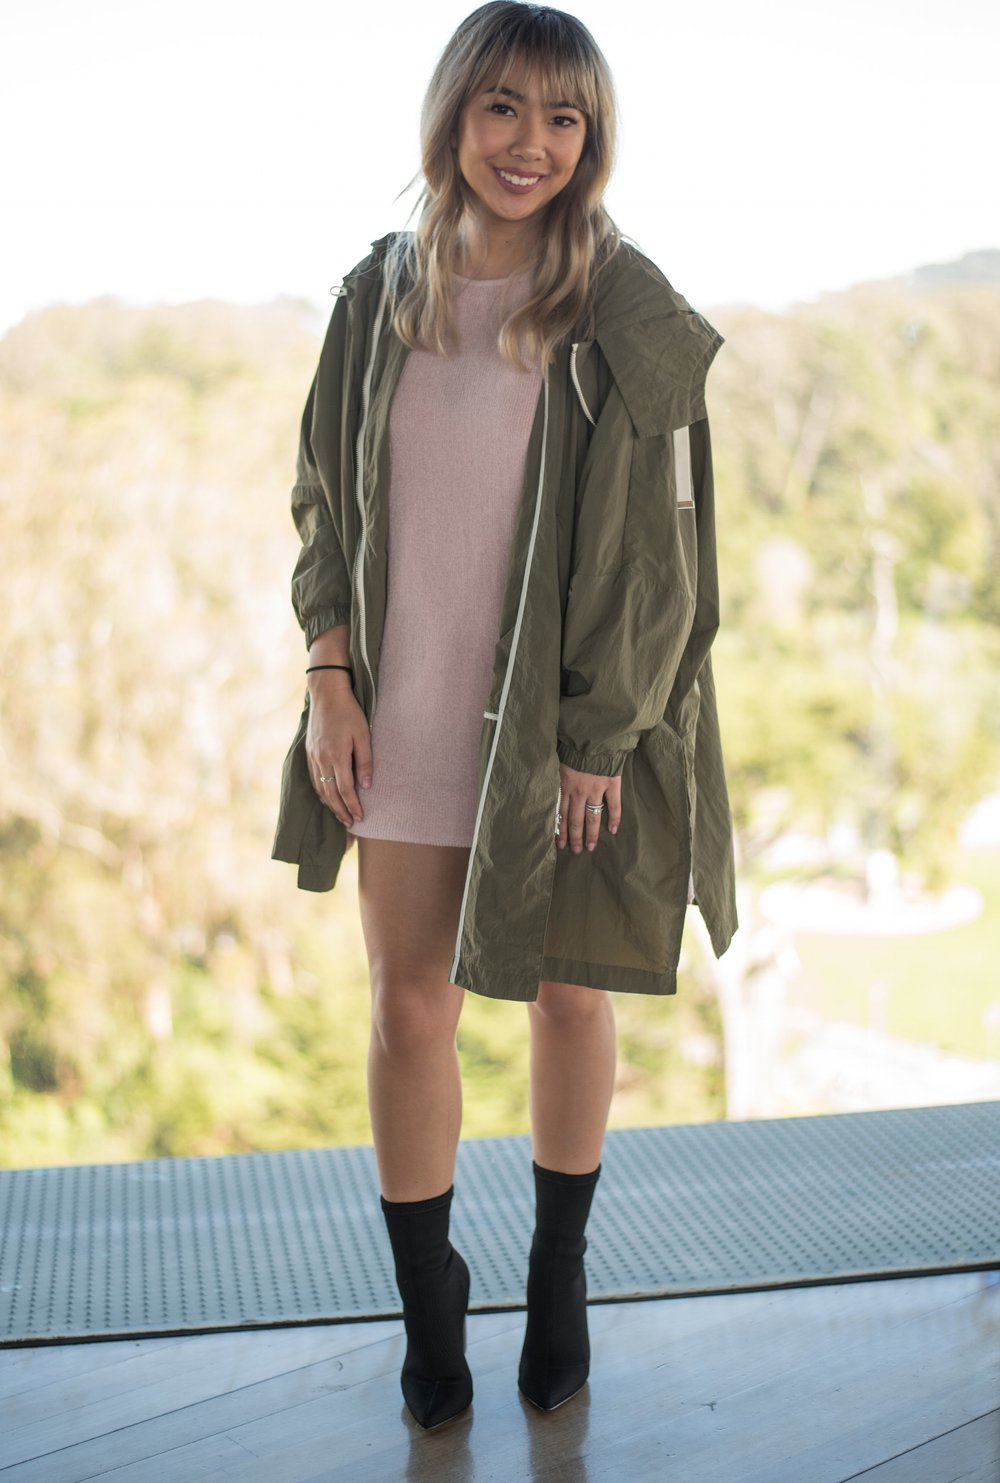 Oversized Flowing Parka in Olive Green (Size XS-S) -$69.90   Purchased from  ZARA  | Currently In Stock   Sweater with Back Bows in Pink (Size M) - $39.90   Purchased from  ZARA  | Currently in Stock   Suede Effect Dress in Mid-Pink (Size S) - $35.90   Purchased from  ZARA  | Currently in Stock   GAZE: Black Booties** (Size 6) - $99.95   Purchased from  Steve Madden  | Not exact pair; similar